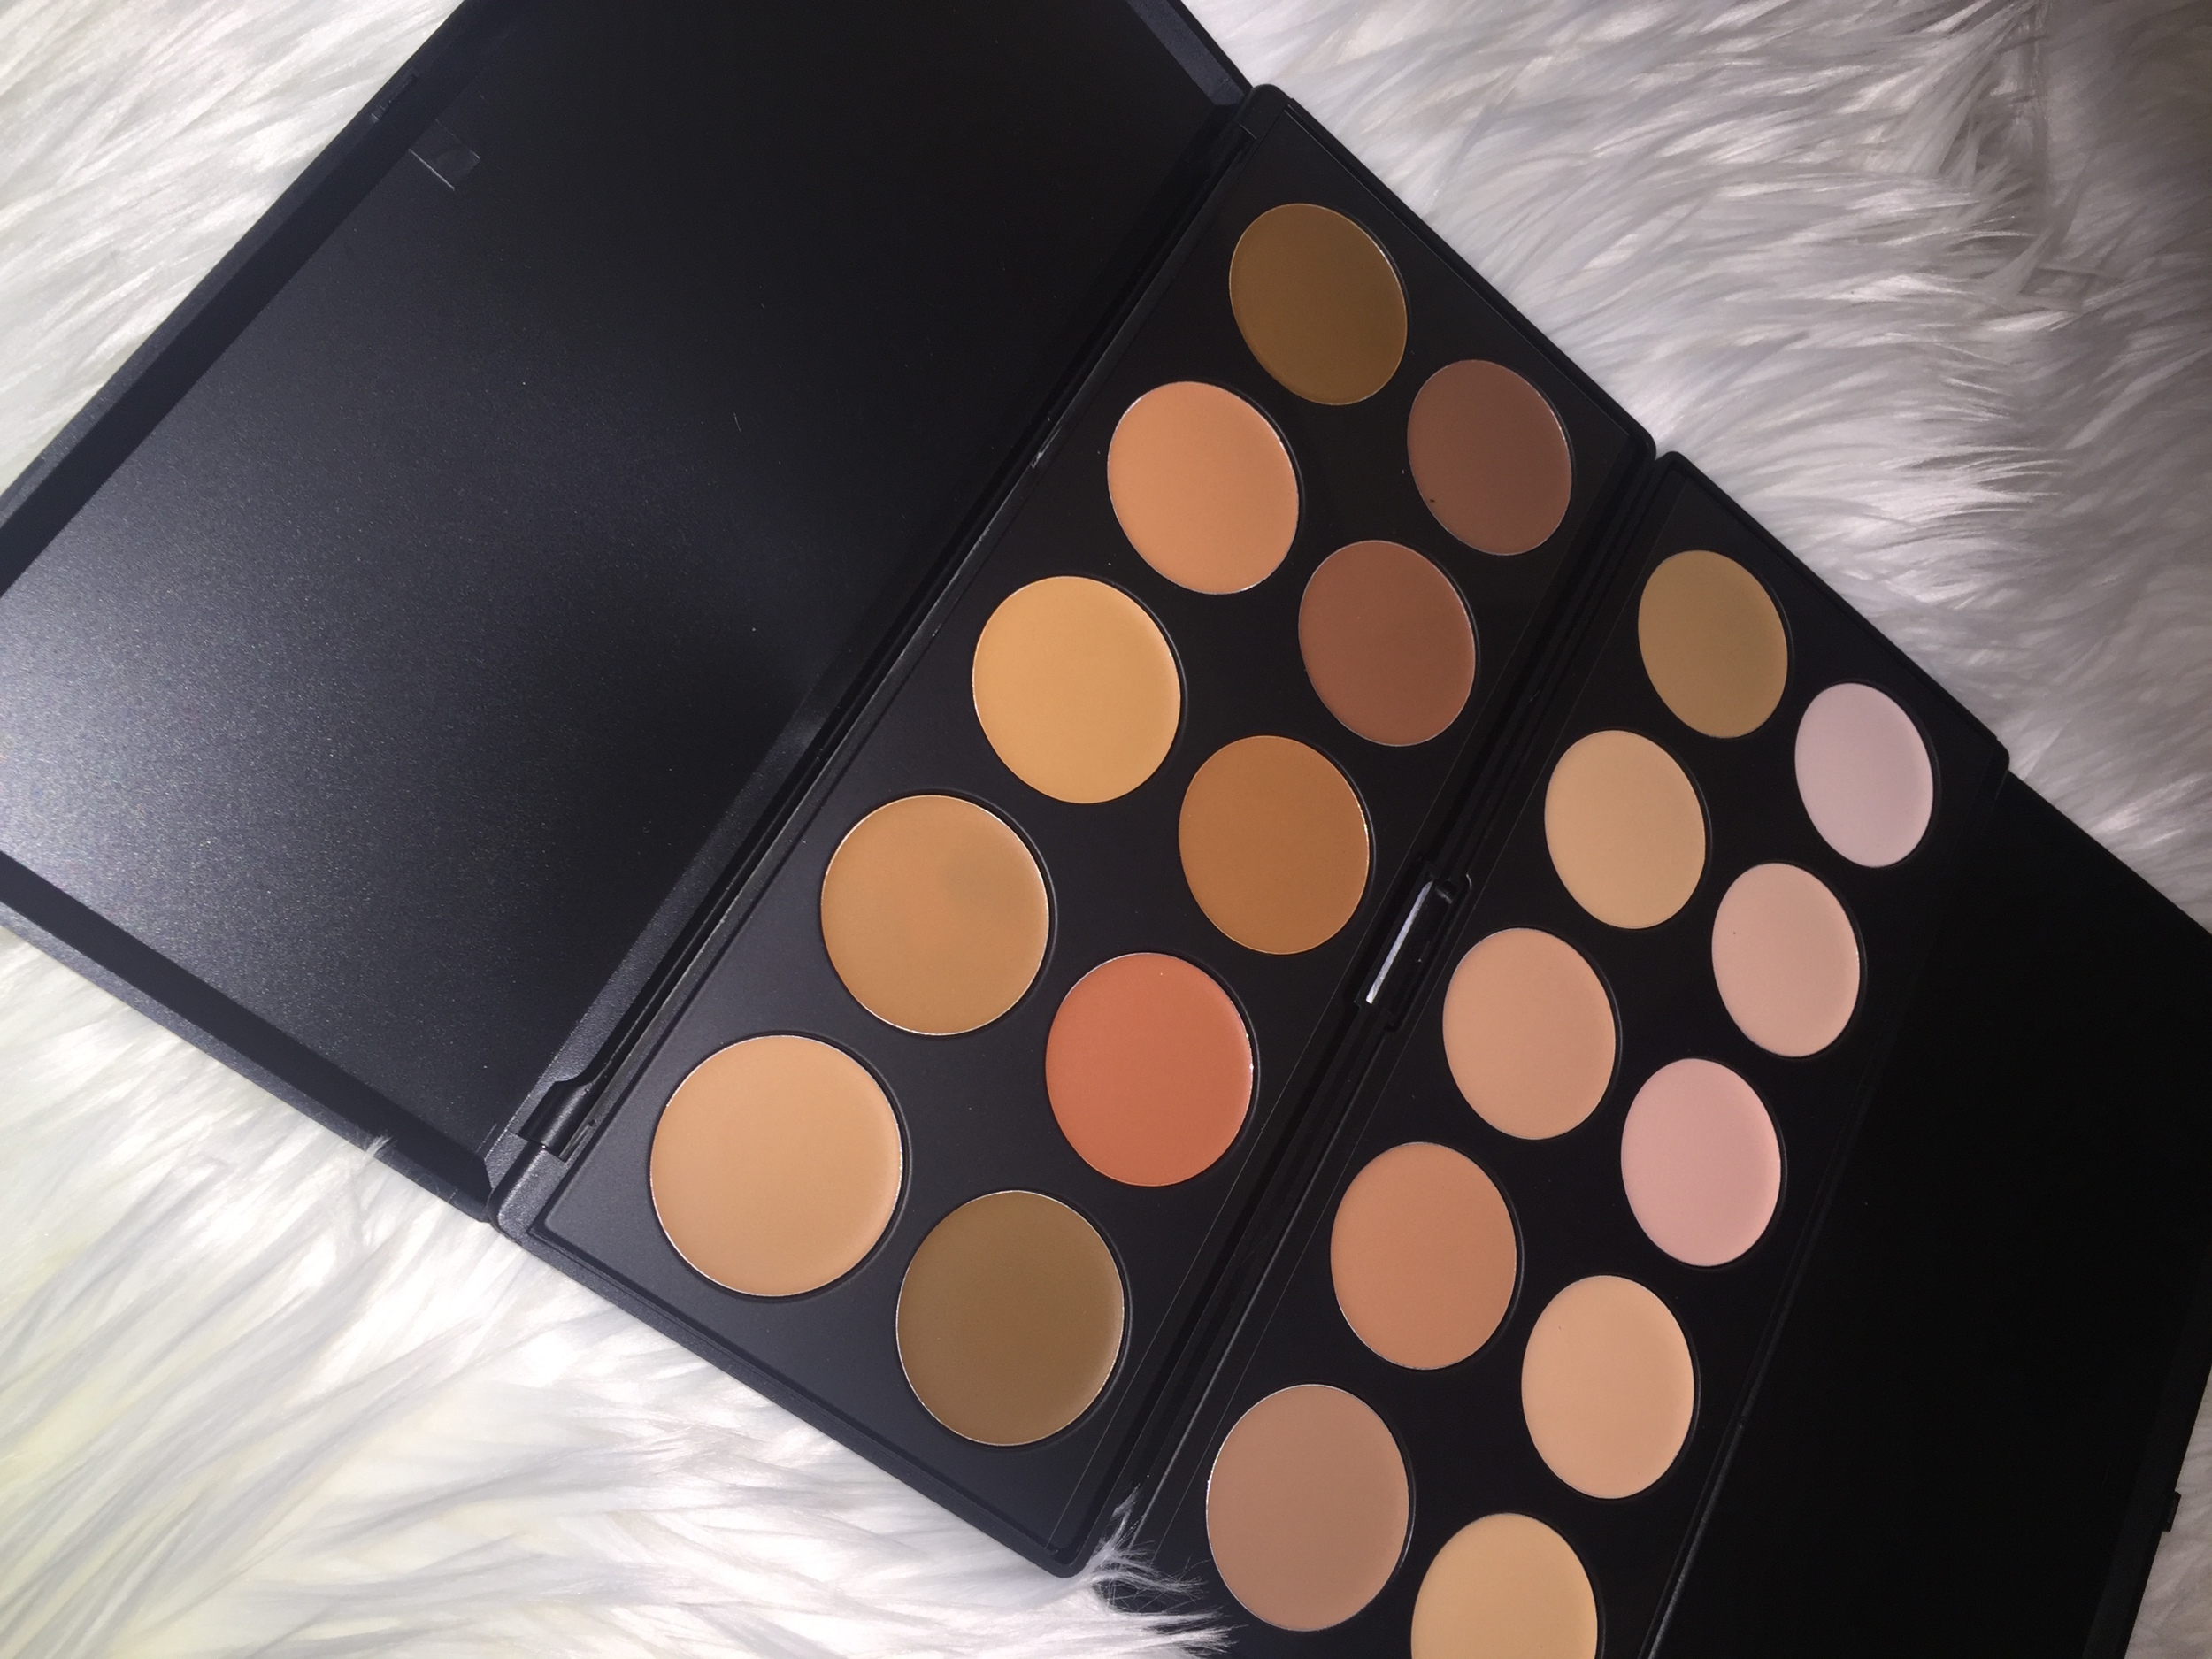 Right: BH Cosmetics Foundation & Concealer 1 10 Color Palette; Left: BH Cosmetics Foundation & Concealer 2 10 Color Palette.